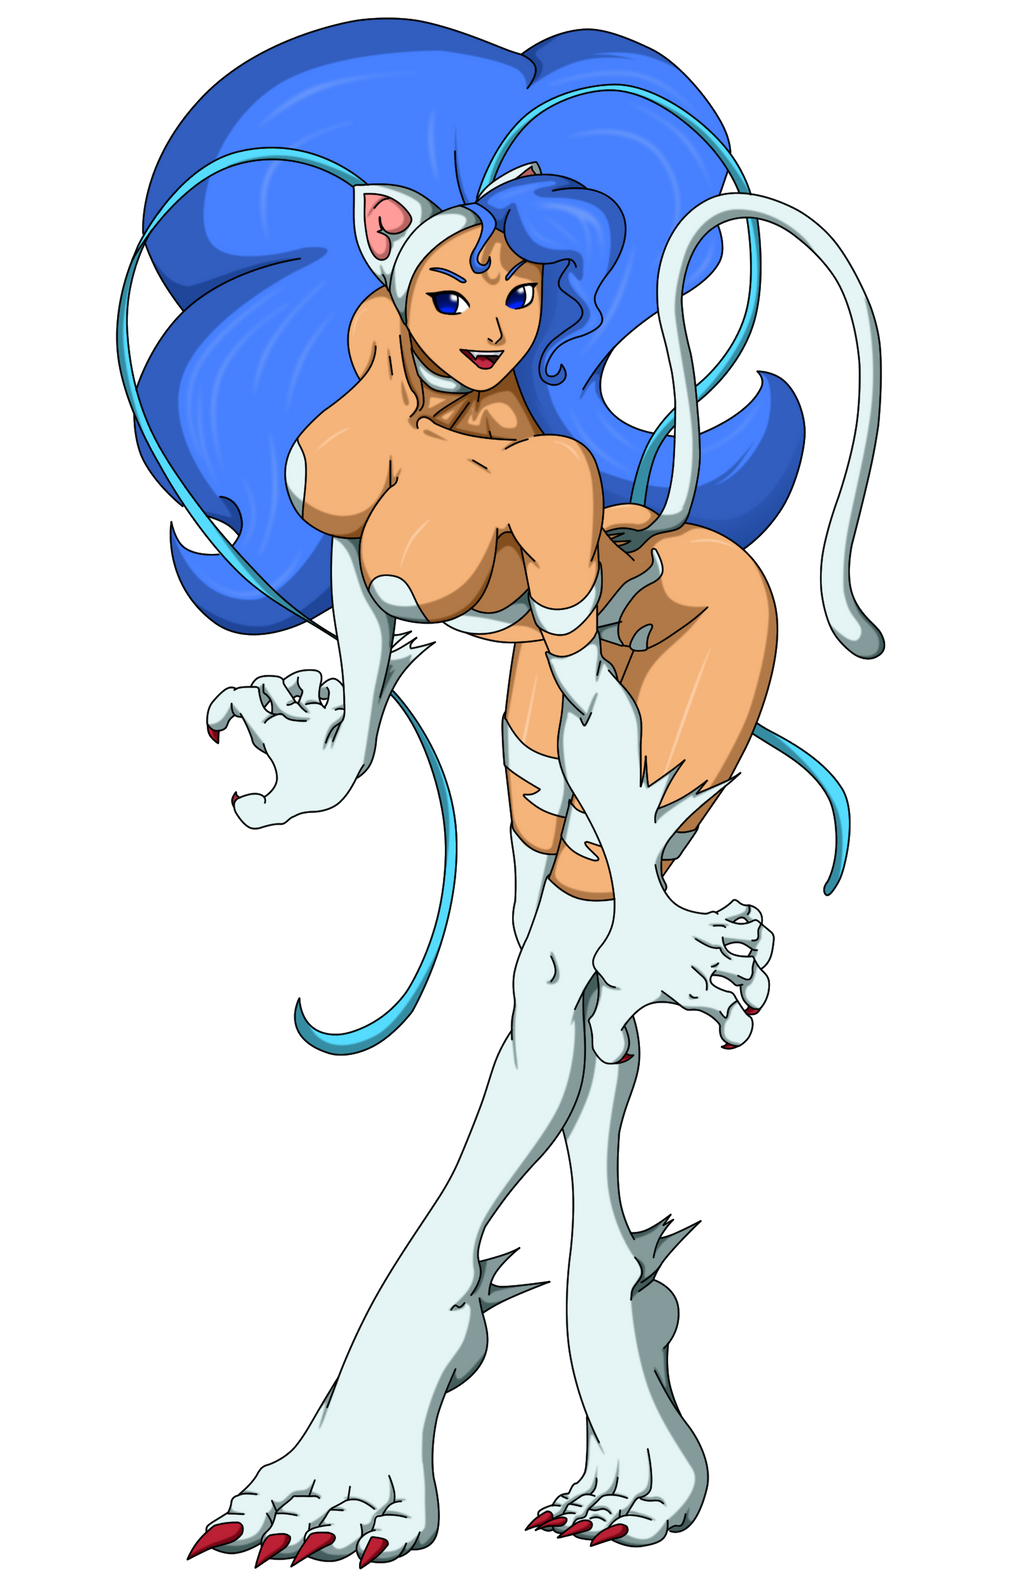 Felicia by Flowerinhell